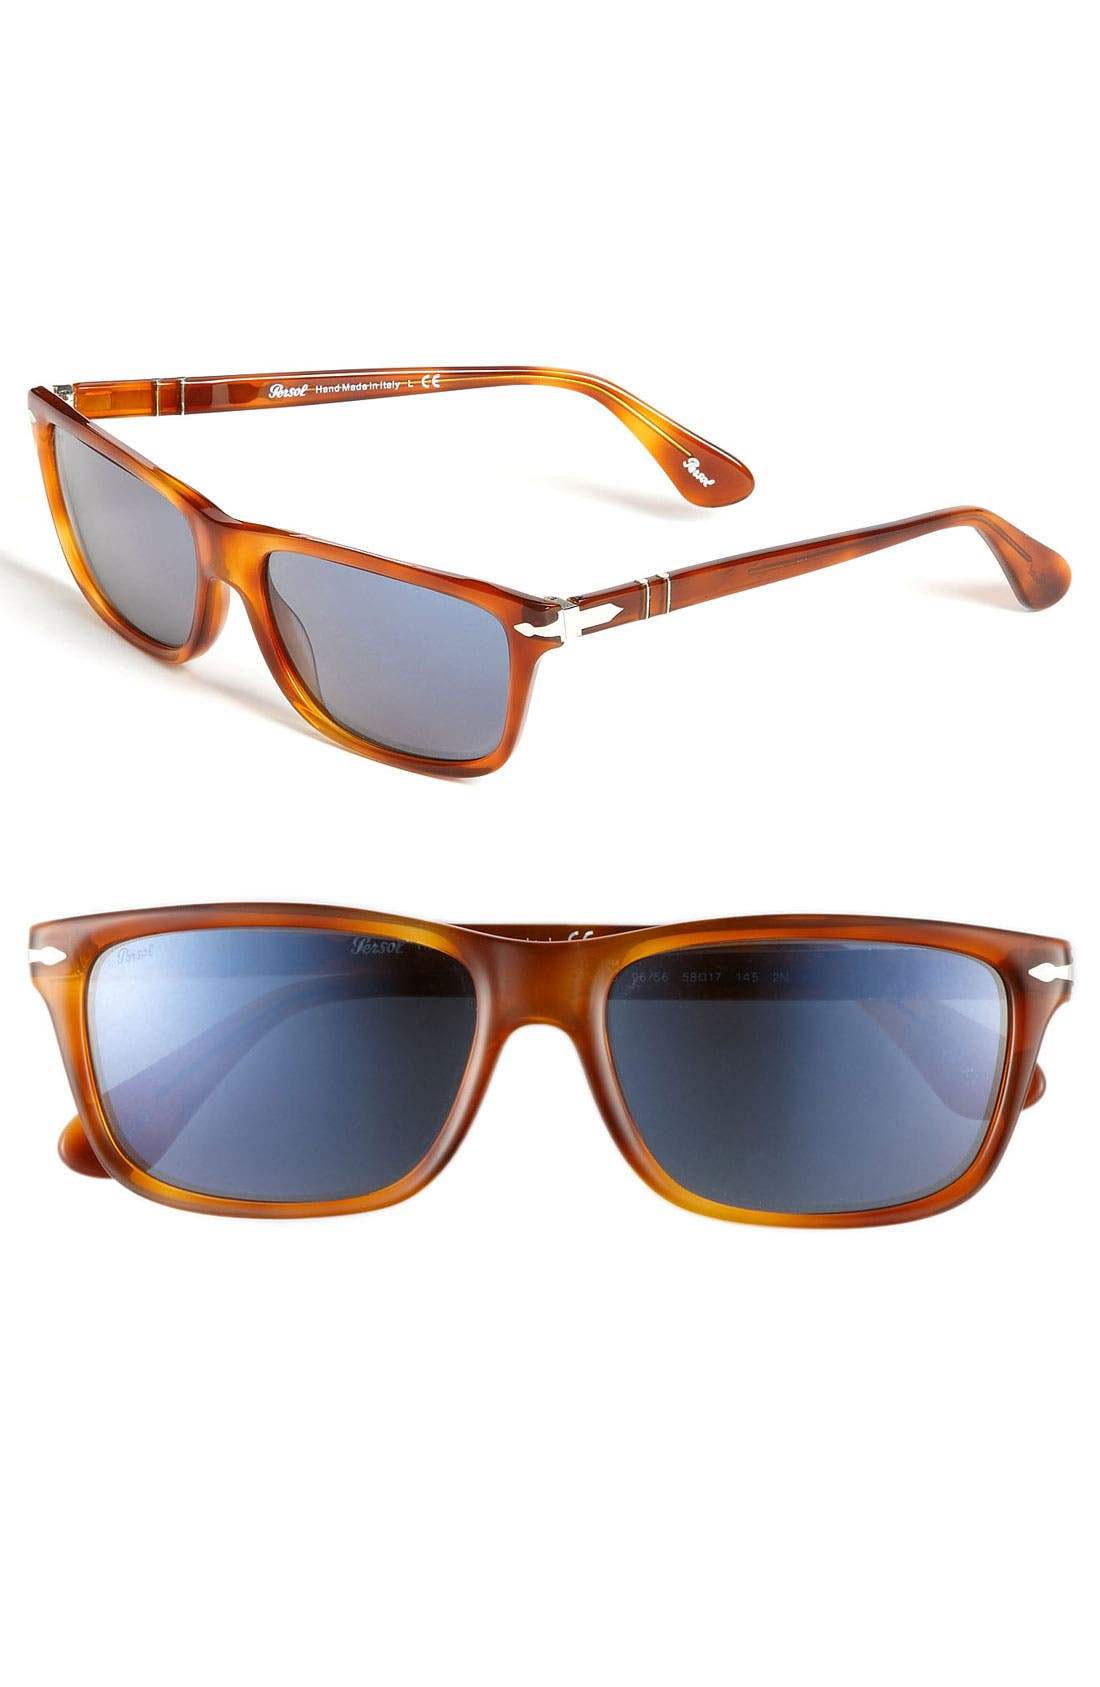 Alternate Image 1 Selected - Persol Rectangular Sunglasses